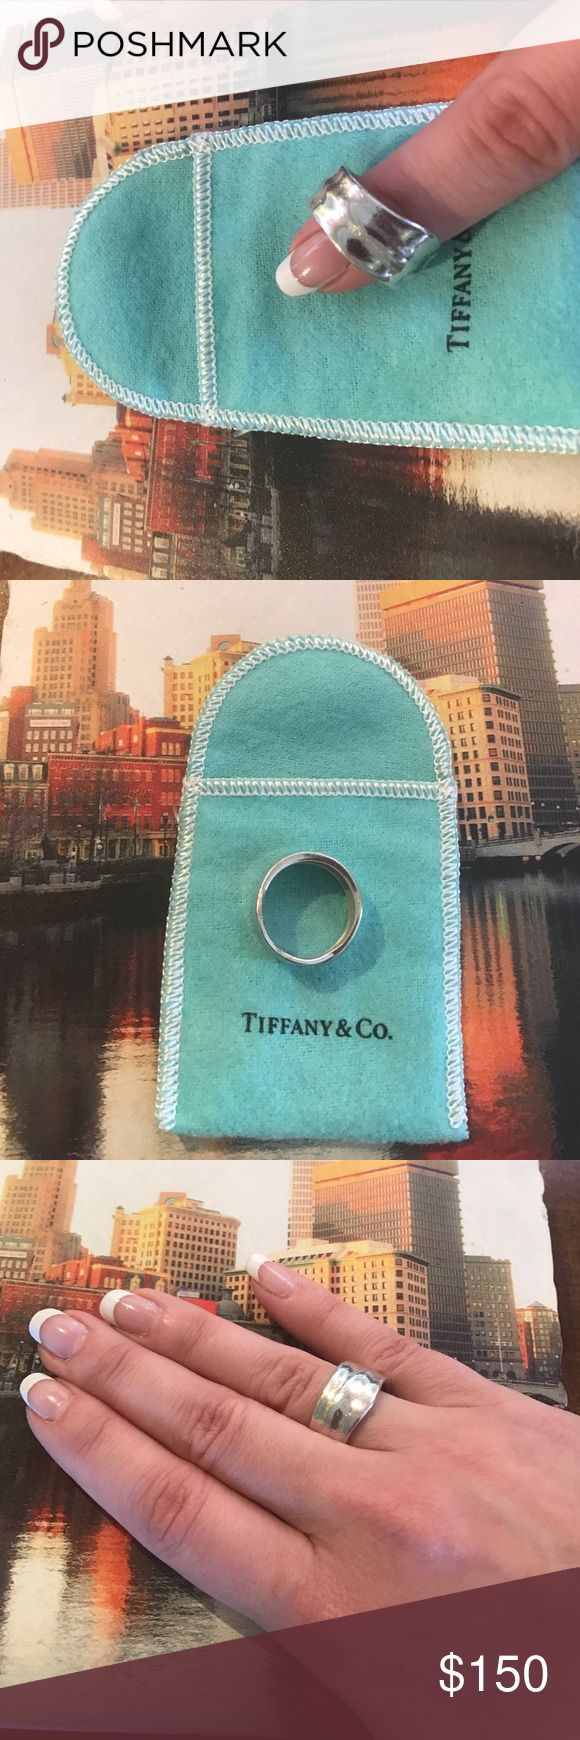 Authentic Tiffany & Company Sterling silver leaf Tiffany and Company 925 Collection sterling silver ring.  Leaf design.  Size 7. Comes with Tiffany and Company duster bag. Tiffany & Co. Jewelry Rings